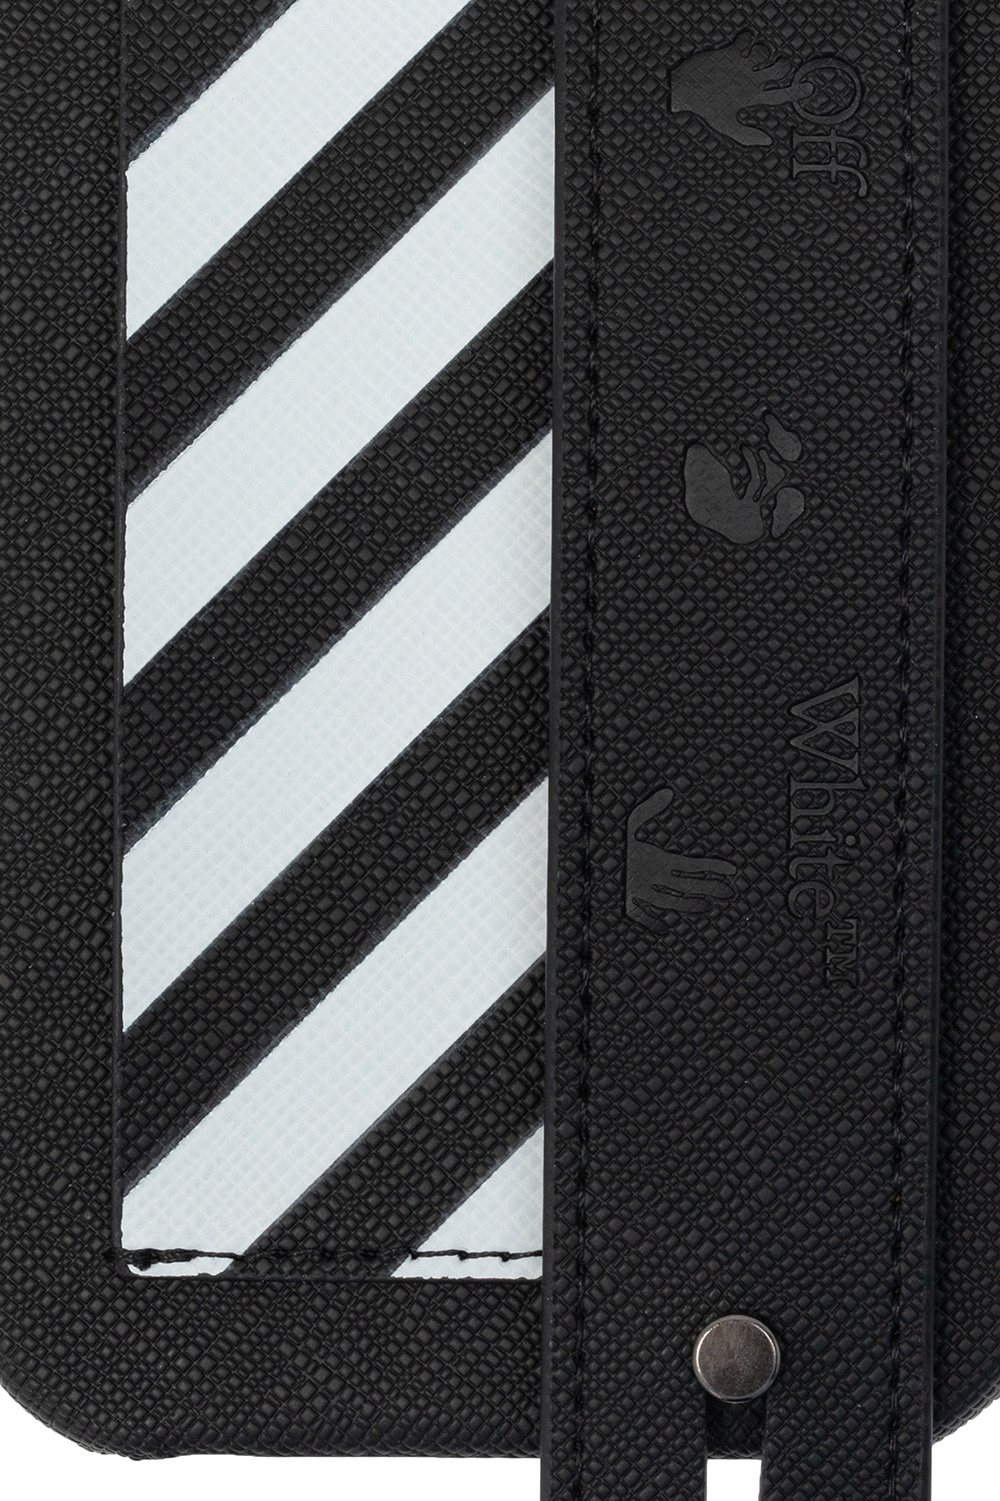 Off-White iPhone 12/12 Pro case